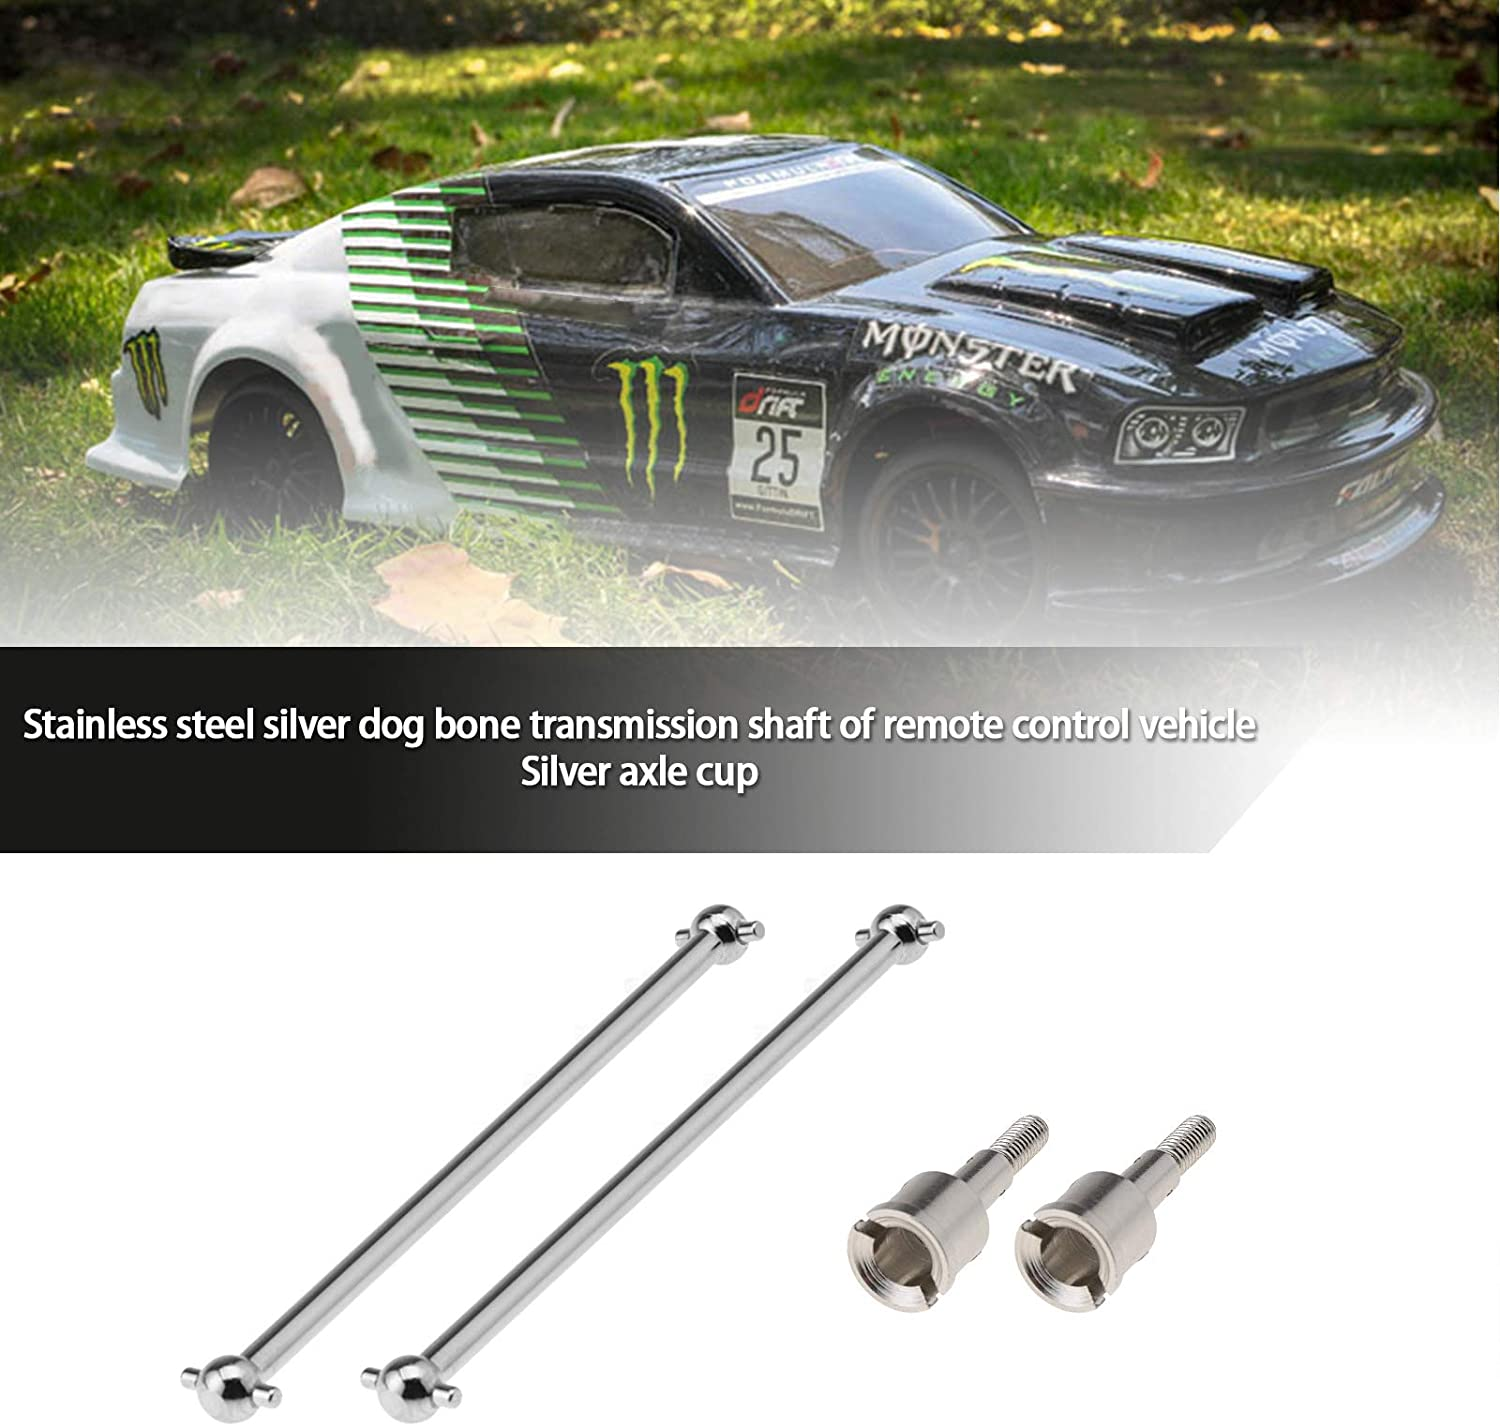 2 Pairs RC Car Front Rear Drive Shafts 89.5mm With Wheel Stub Axle 08029 08059 Universal Silver Stainless Steel Replacement For HSP 1//10 94111 94188 94170